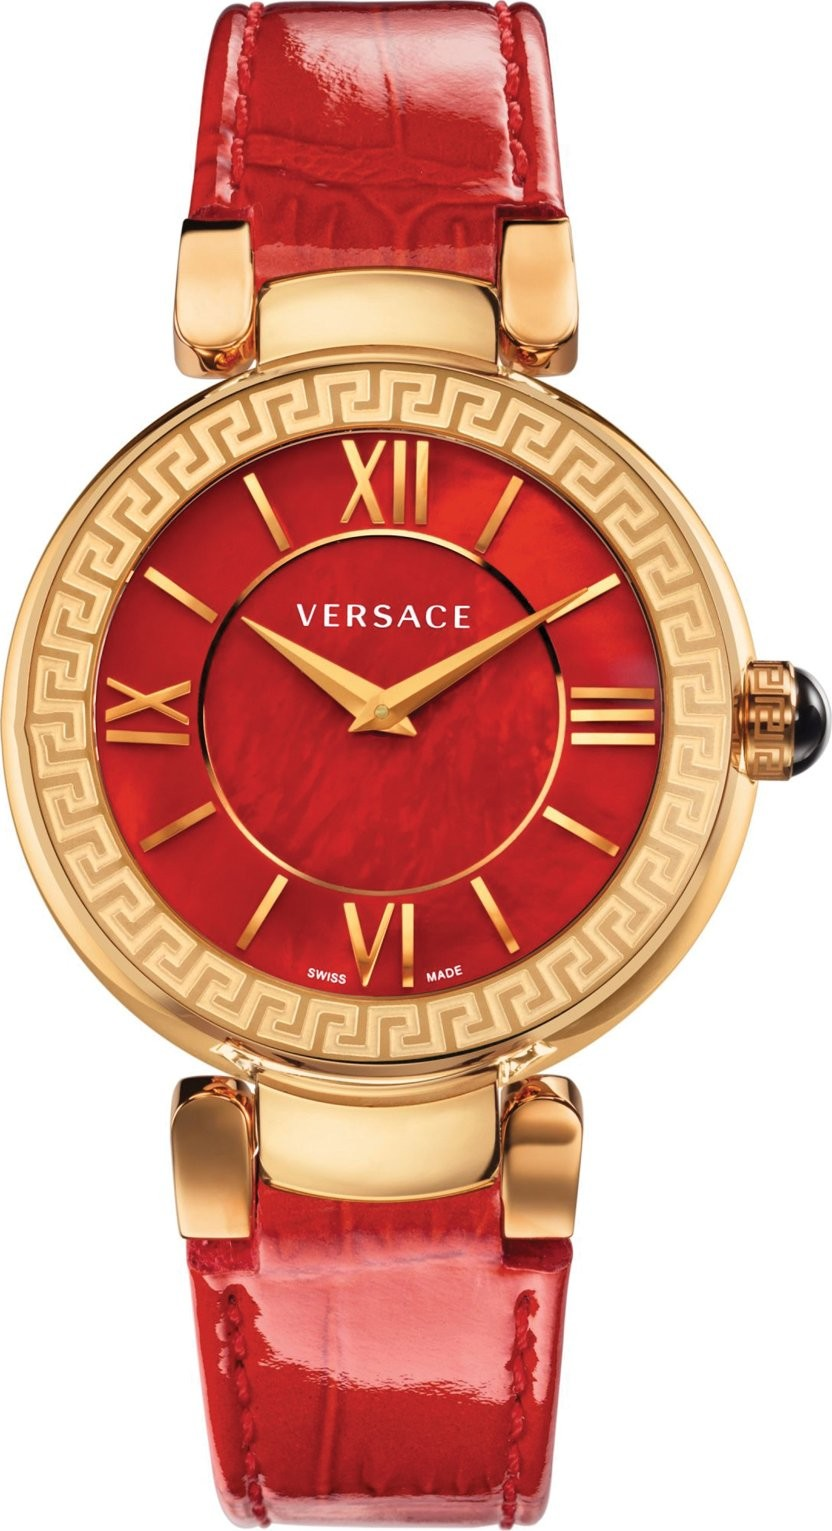 Versace Leda Swiss Quartz Red Watch 36mm